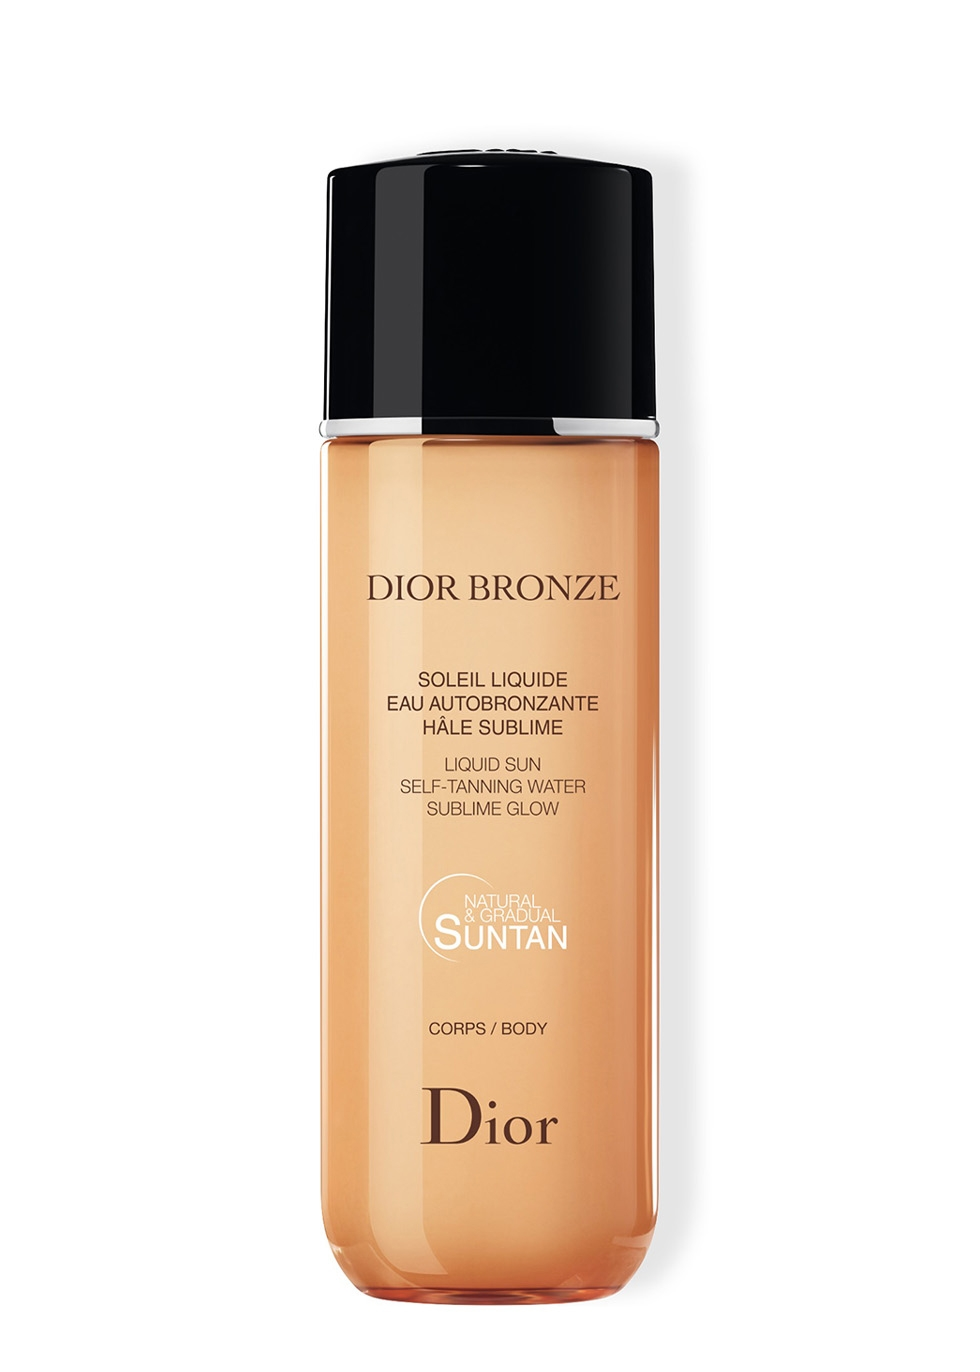 Dior Bronze Liquid Sun Self-tanning Water